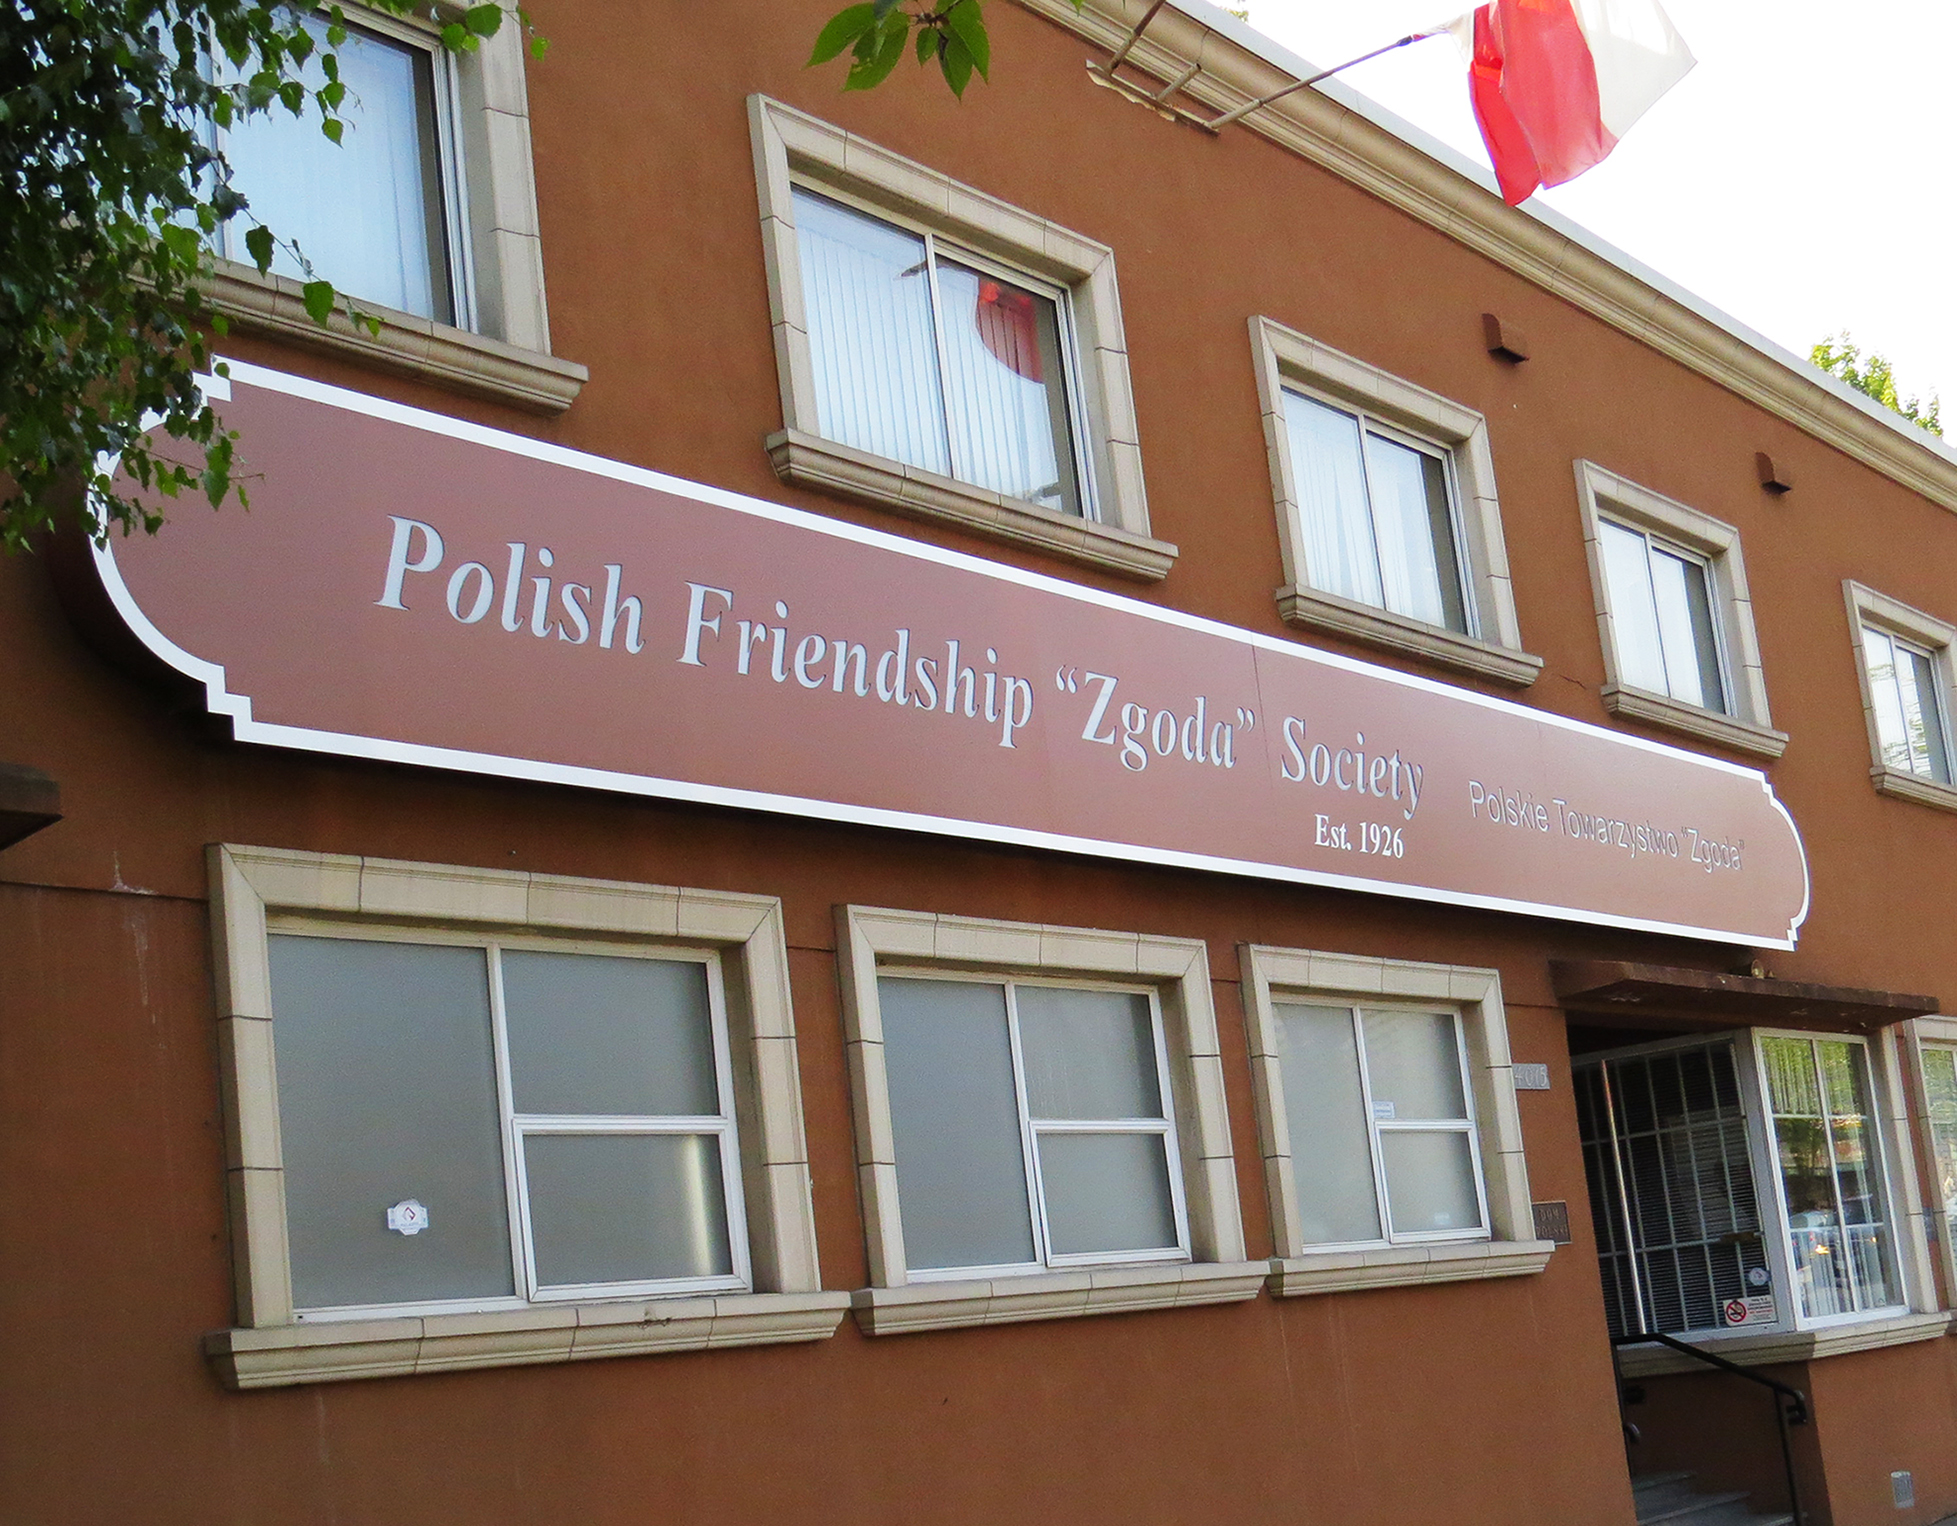 Polish Friendship Society on Fraser street